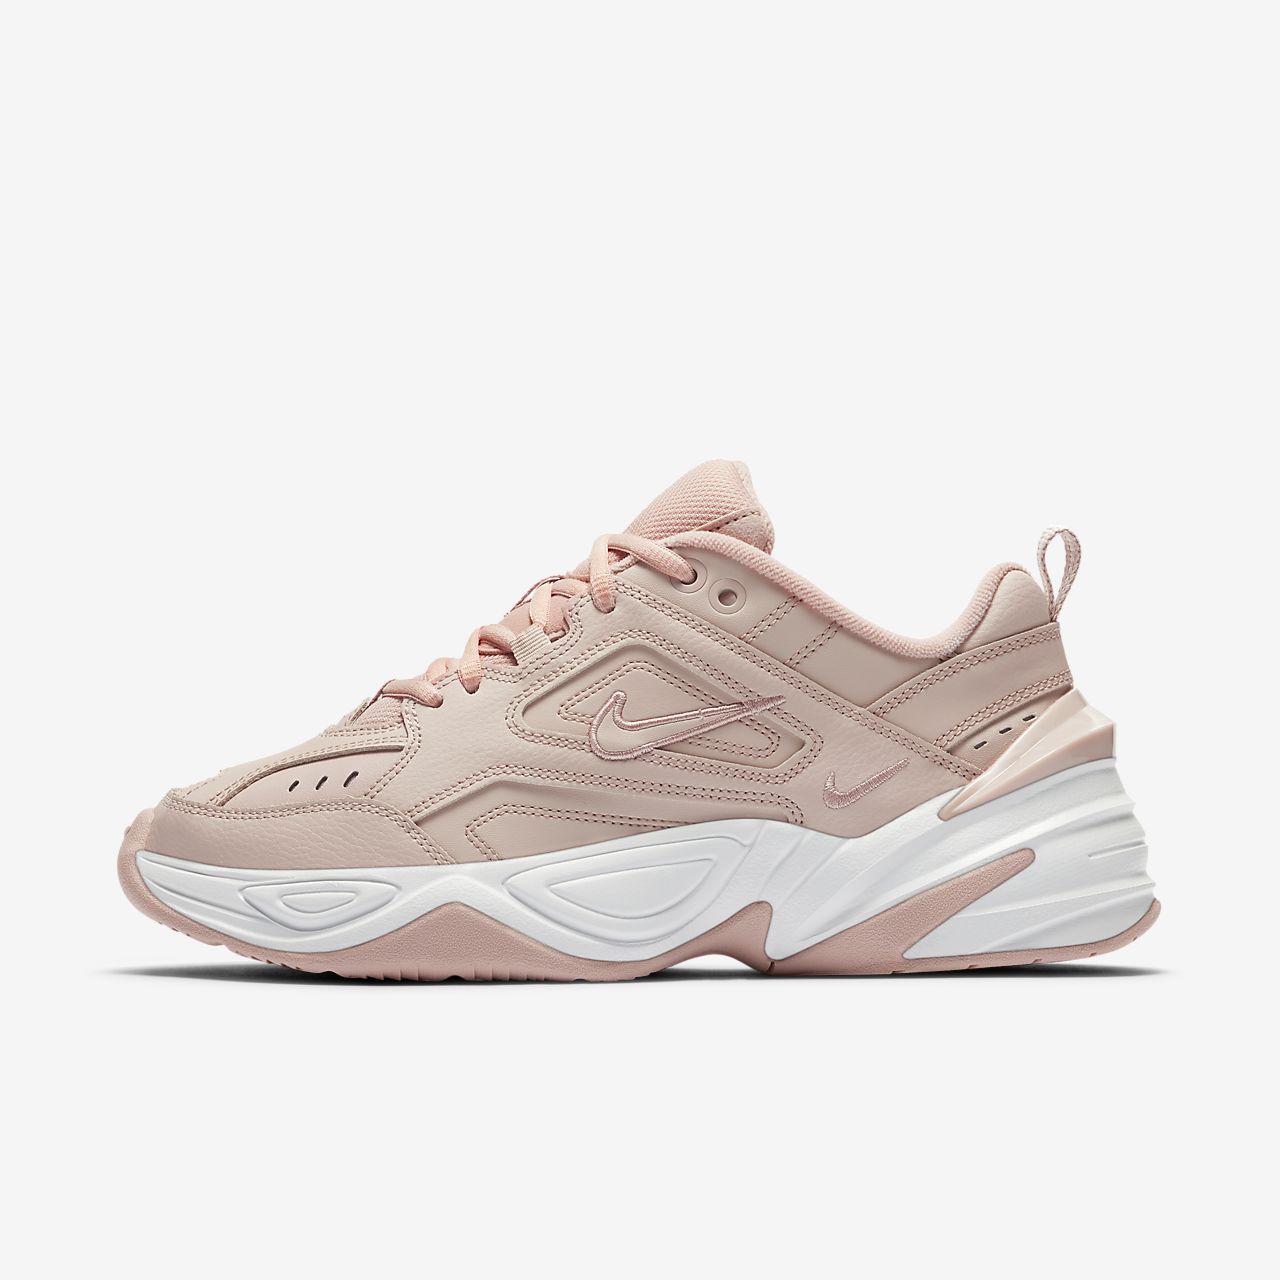 Low Resolution Scarpa Nike M2K Tekno Scarpa Nike M2K Tekno